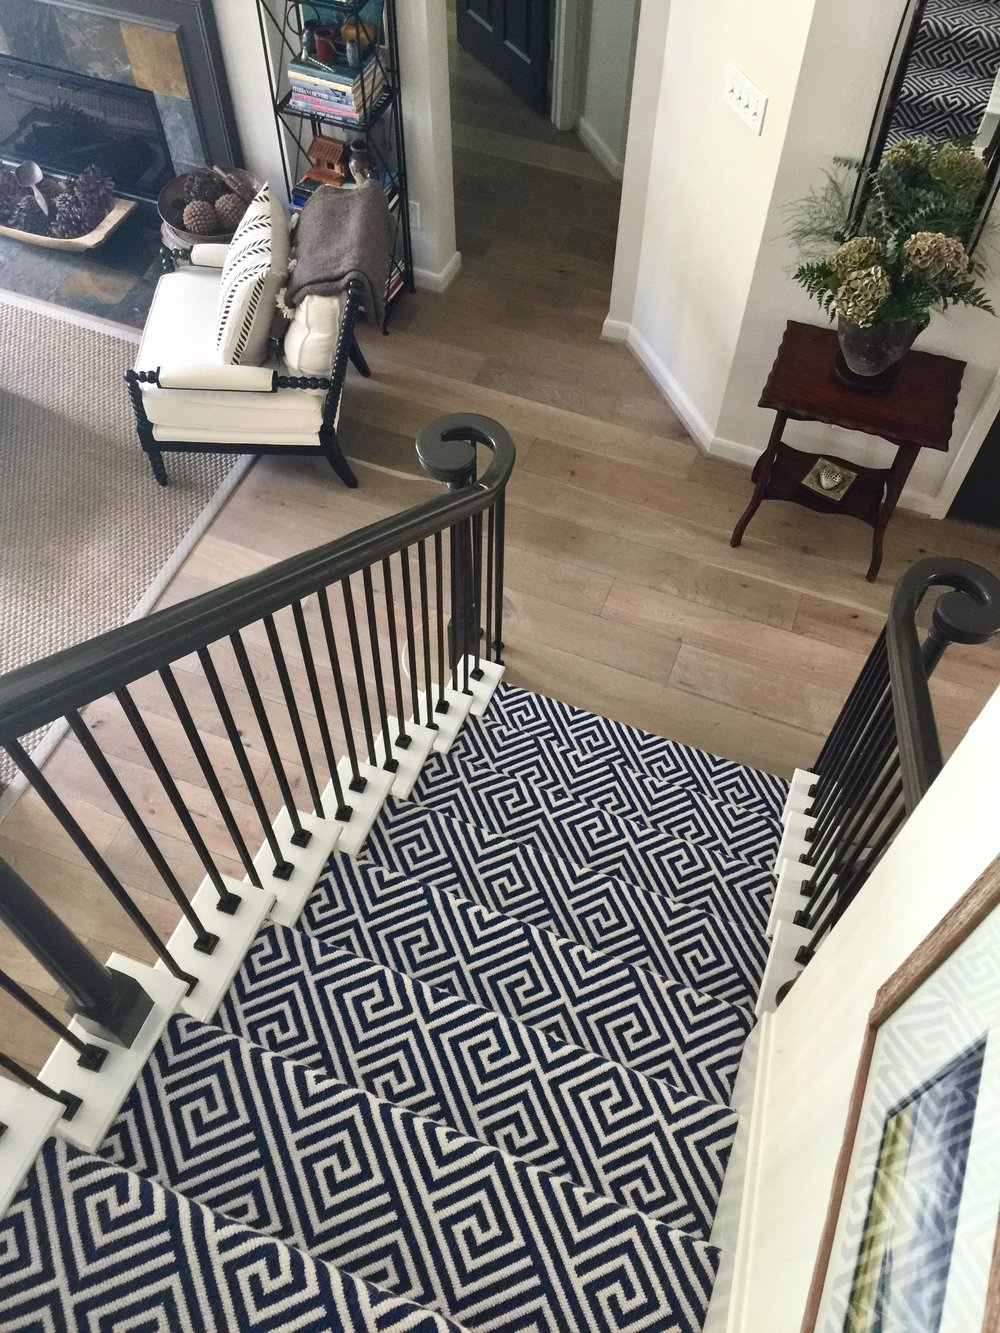 Patterned stair carpet in center of open plan home with wood bottom step - Designer Carla Aston #stairrunner